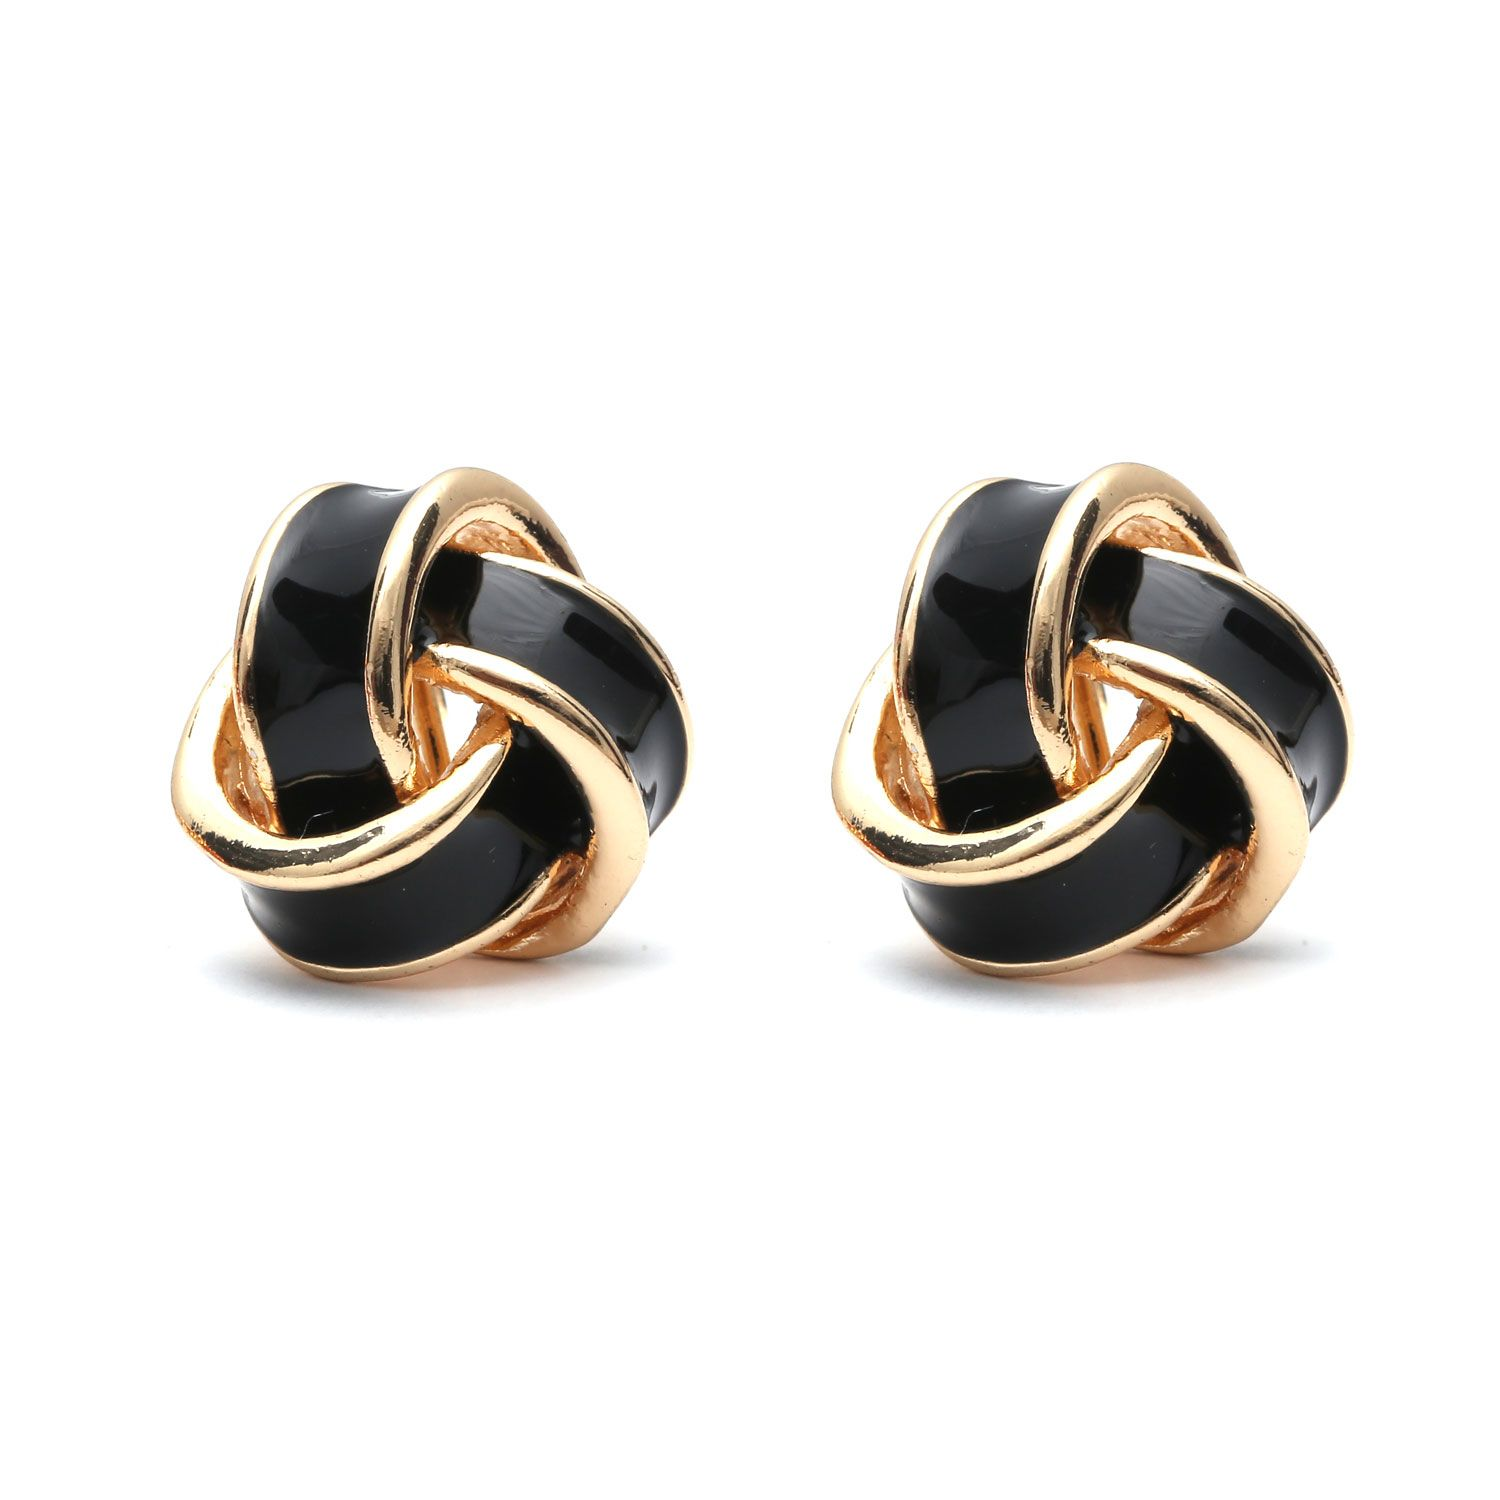 80a559146 Black Enamel Knot Gold-Tone Screw Back Clip-on Earrings